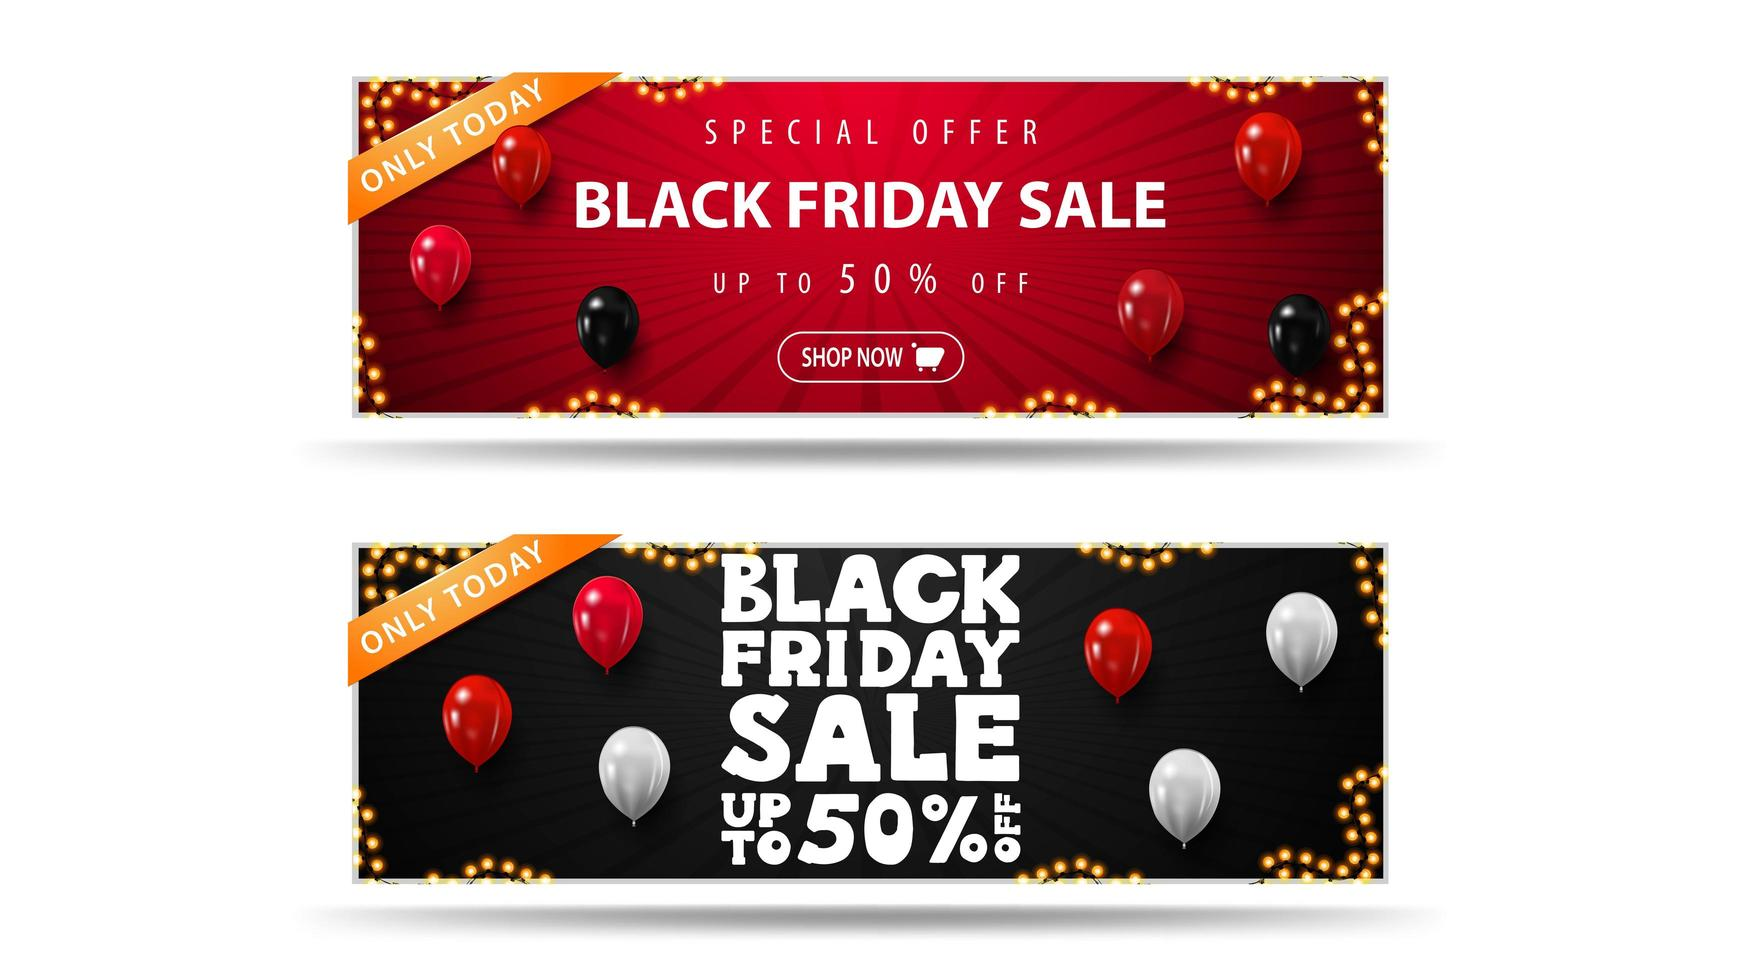 Only today, Black Friday Sale discount banners vector